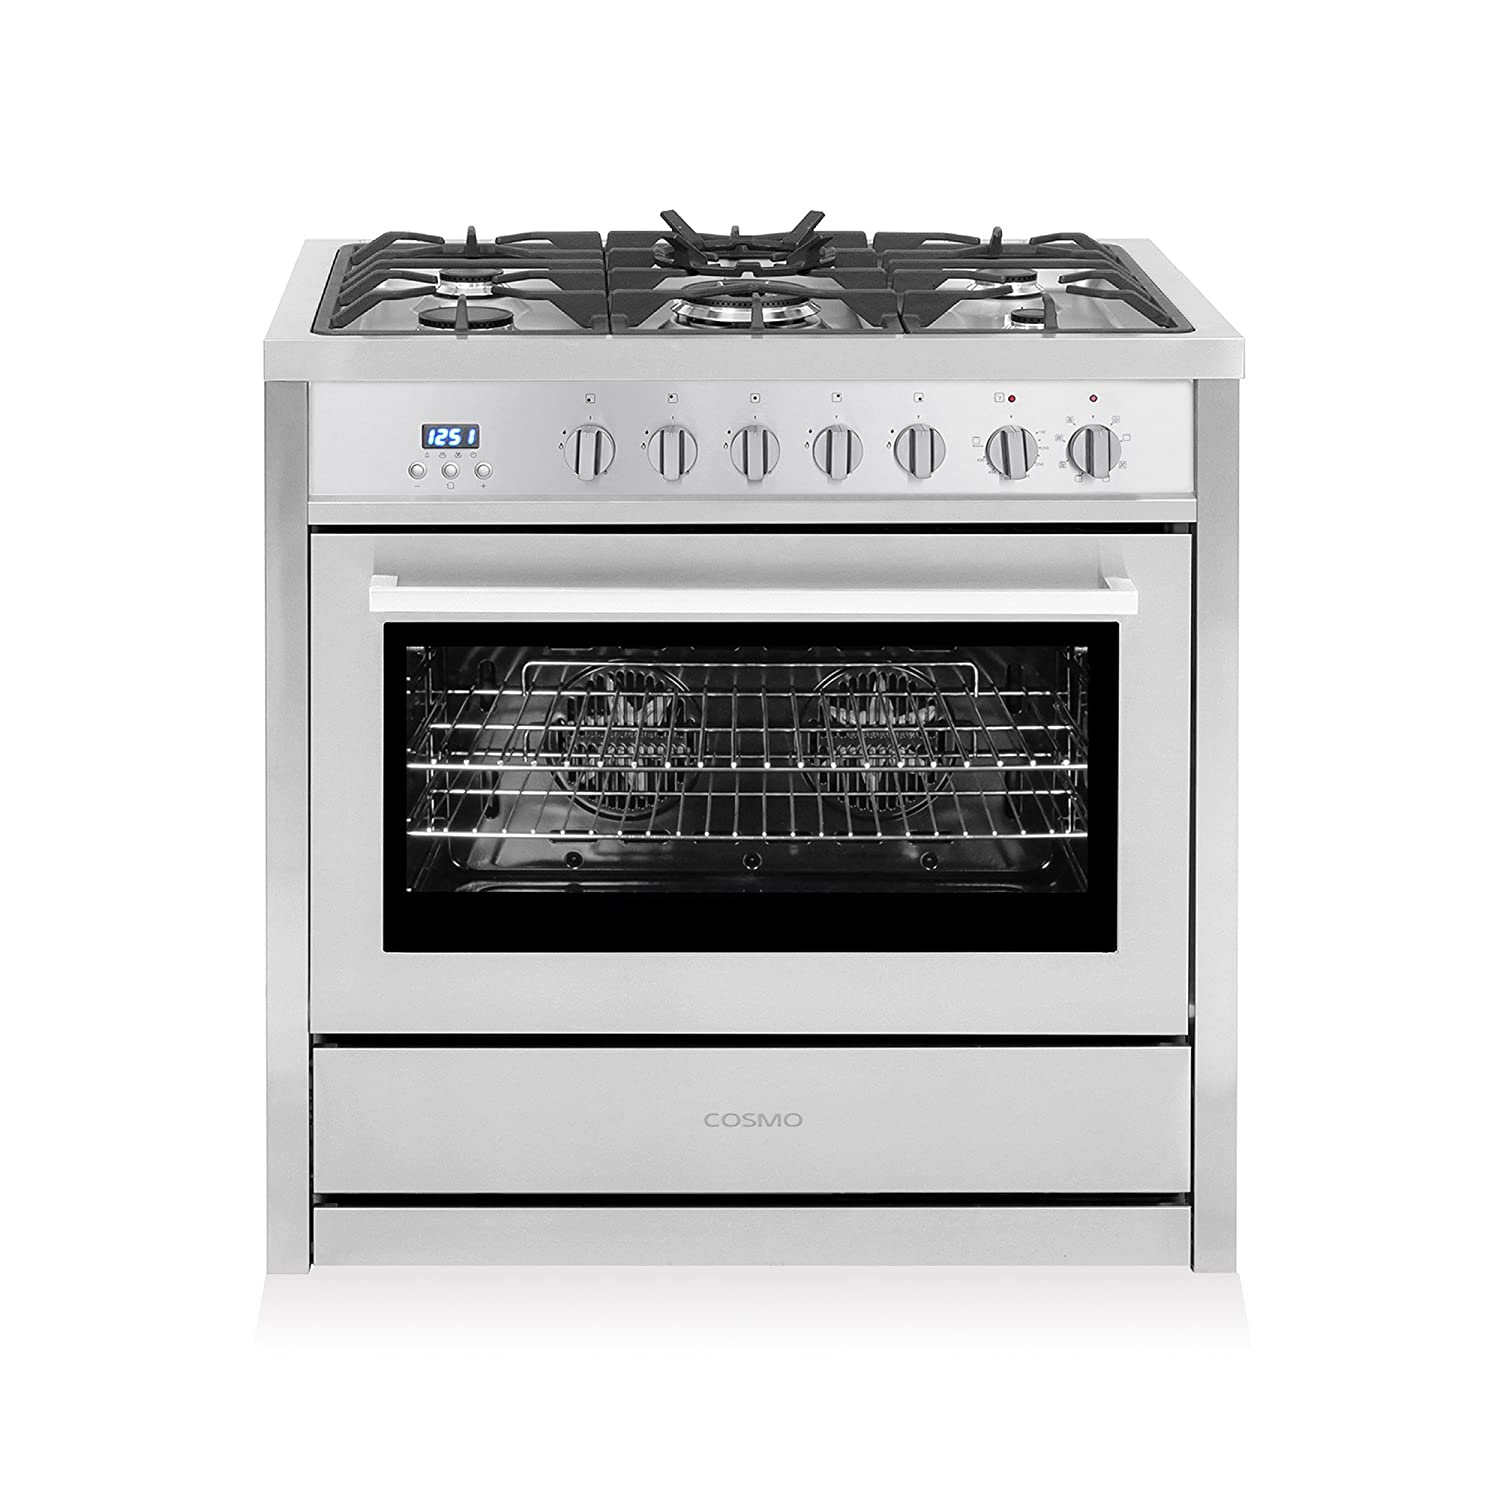 Cosmo COS-F965NF Commercial-Style 36 in. 3.8 cu. ft. Single Dual Fuel Range with with 5 Burners and 8 Function Convection Oven, Cast Iron Grates|Stainless Steel